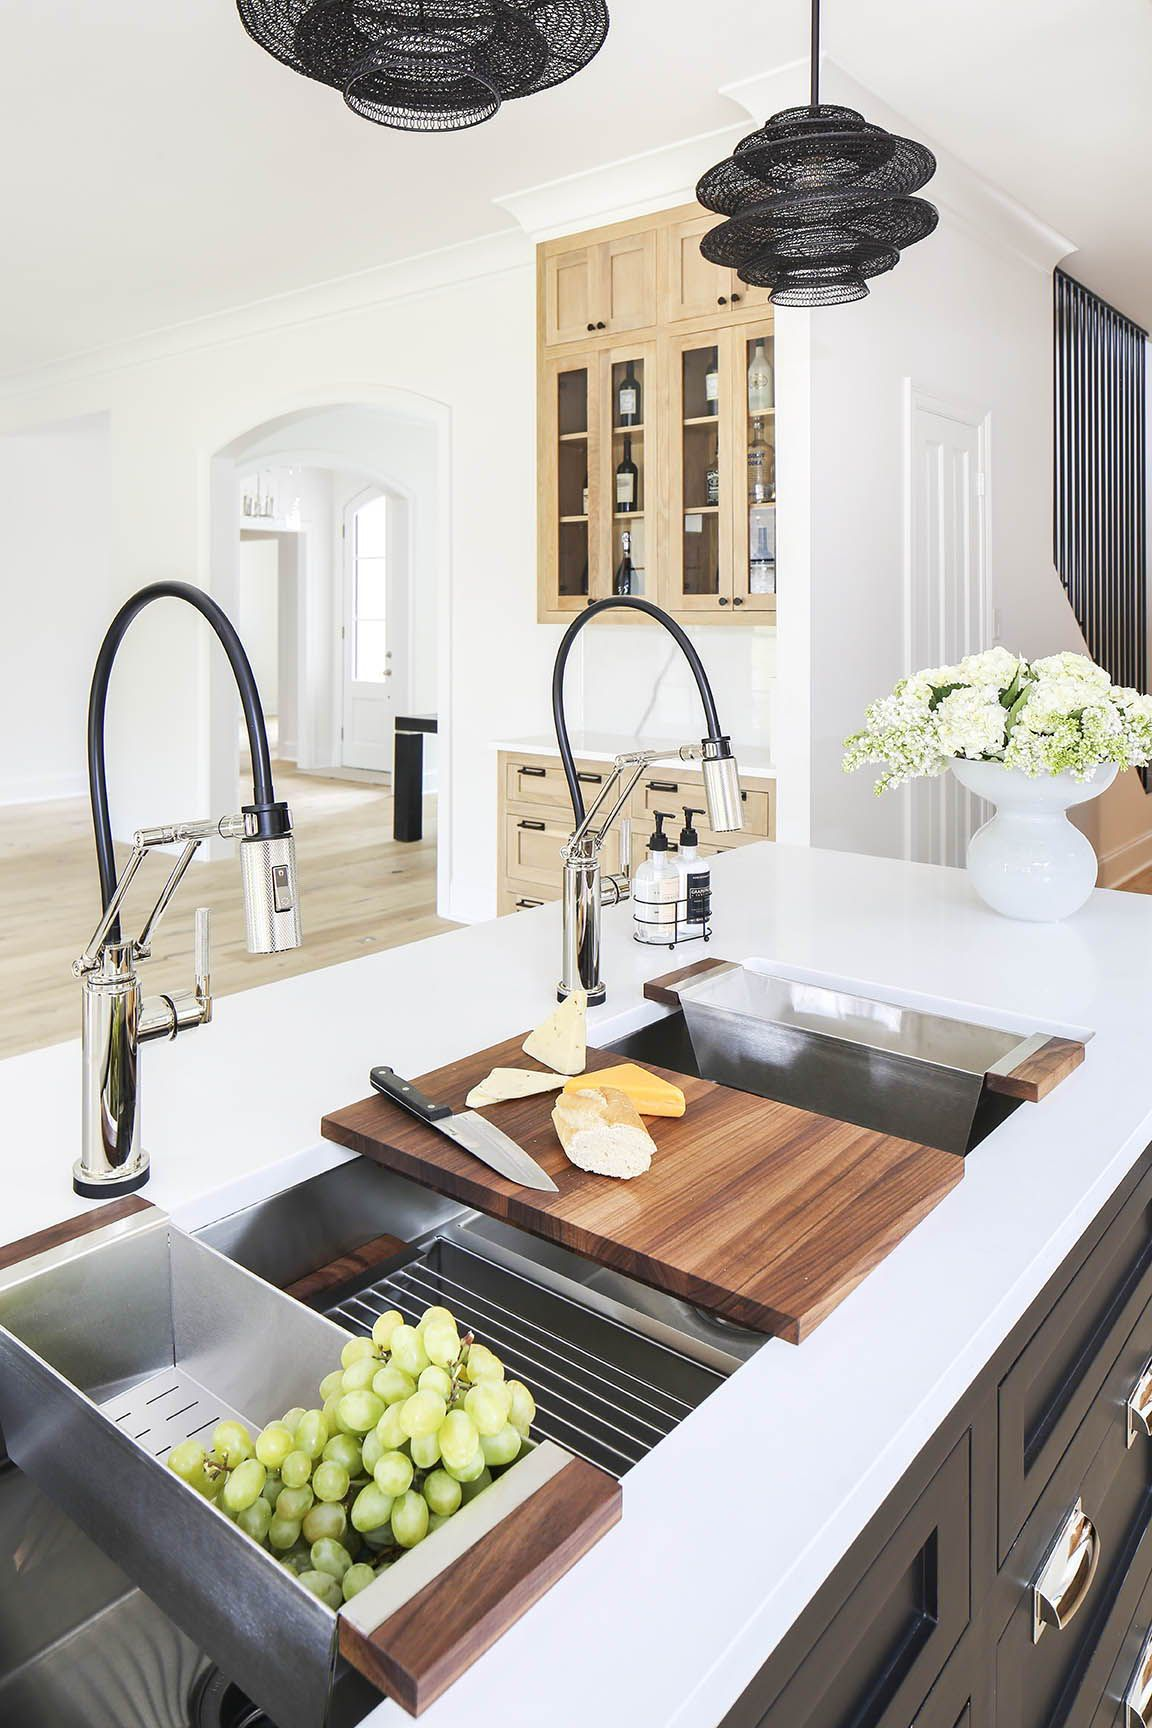 Two Toned Gourmet Kitchen Designed By Arianne Bellizaire Interiors Featuring Julien Smarts Gourmet Kitchen Design Kitchen Interior Kitchen Remodeling Projects